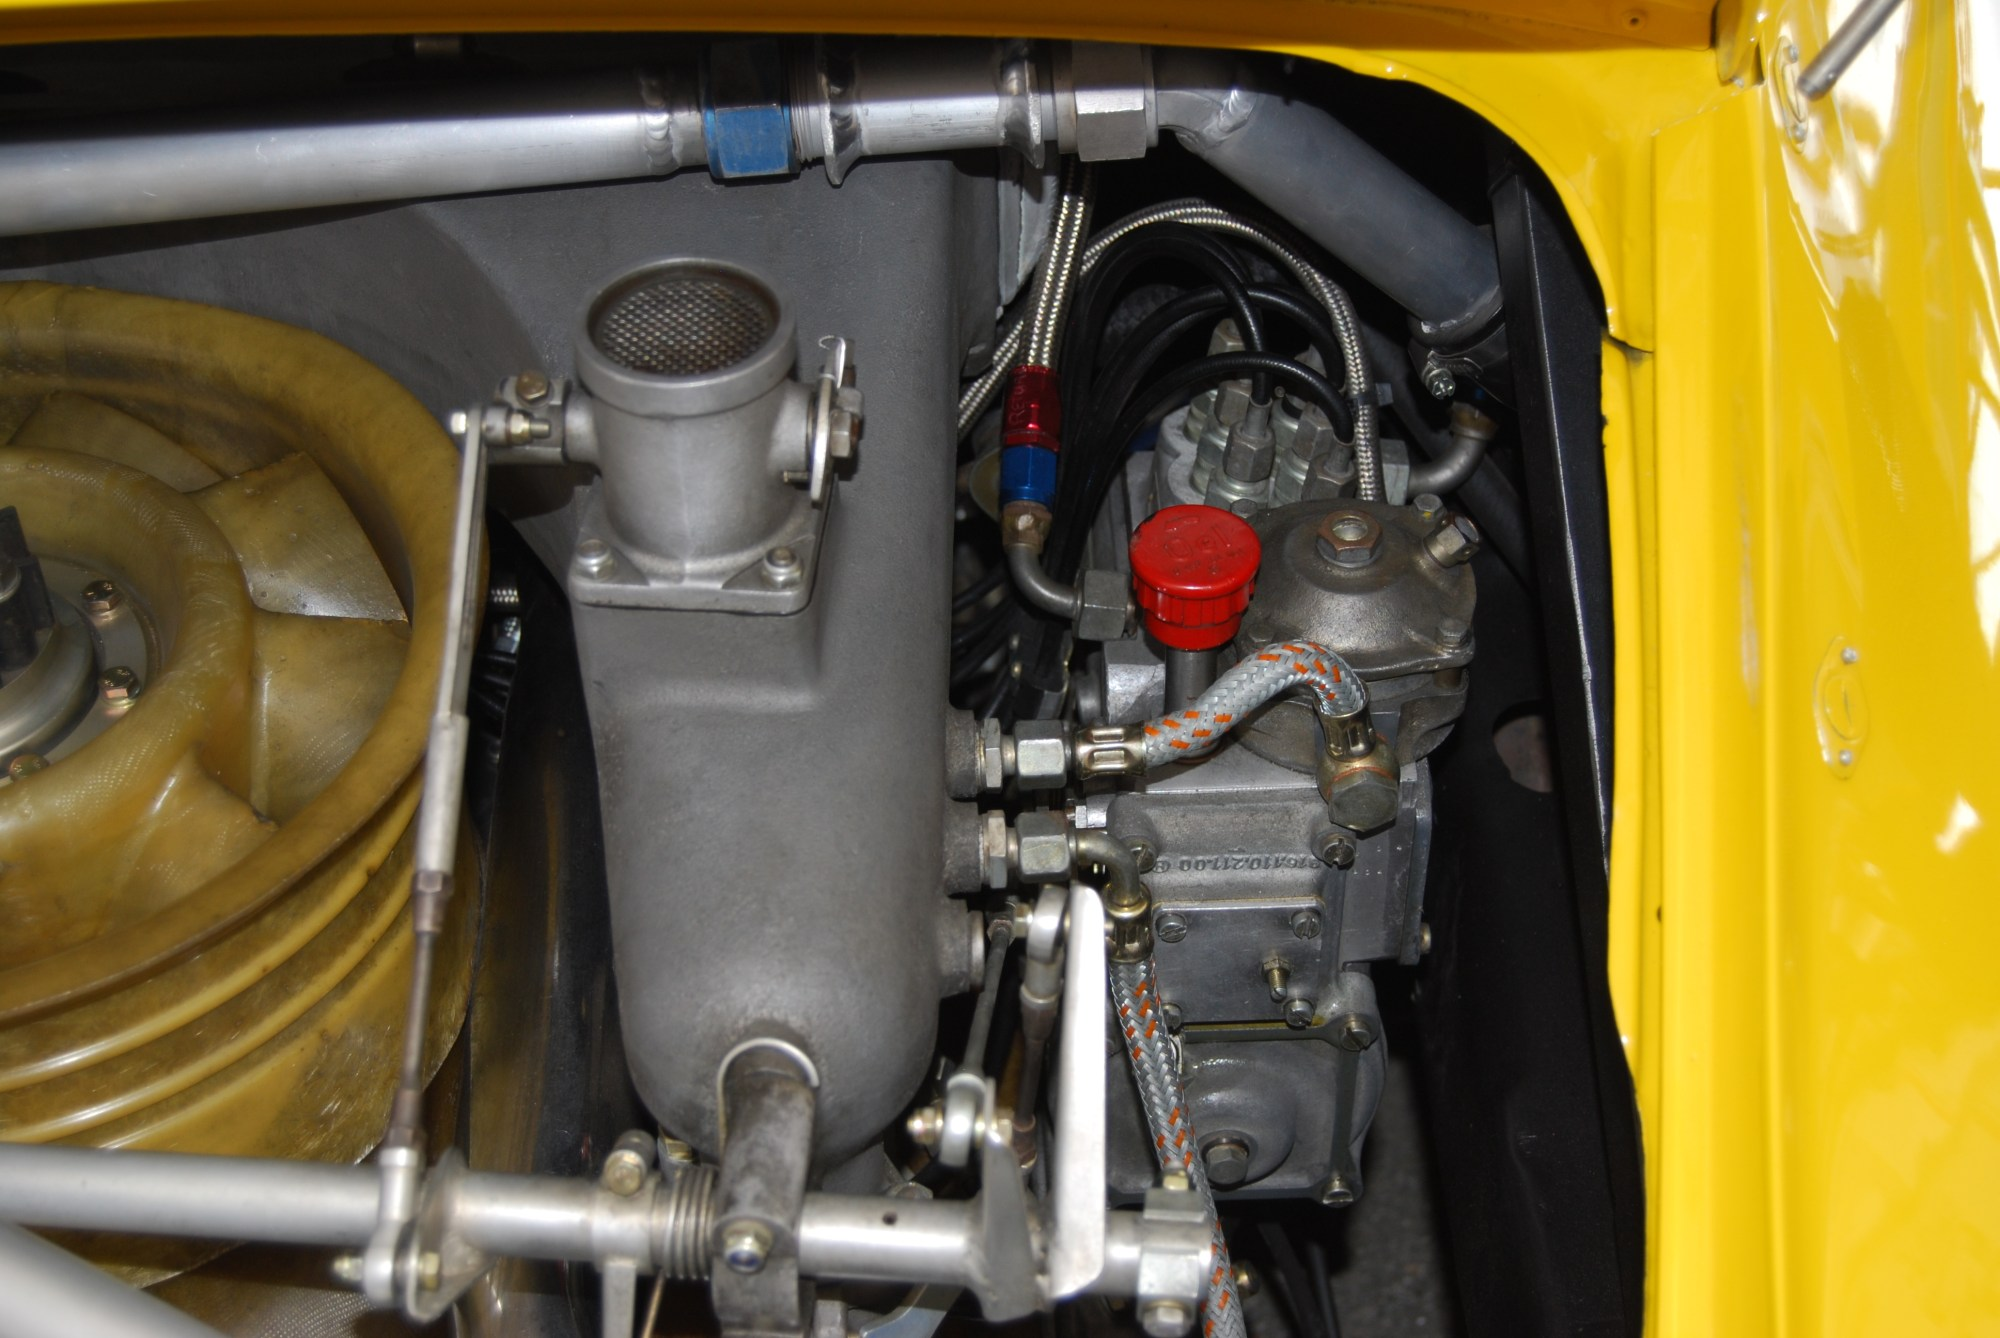 hight resolution of file flickr wbaiv fuel injection pump right flat fan left dump valve center jpg 3872x2592 lucas